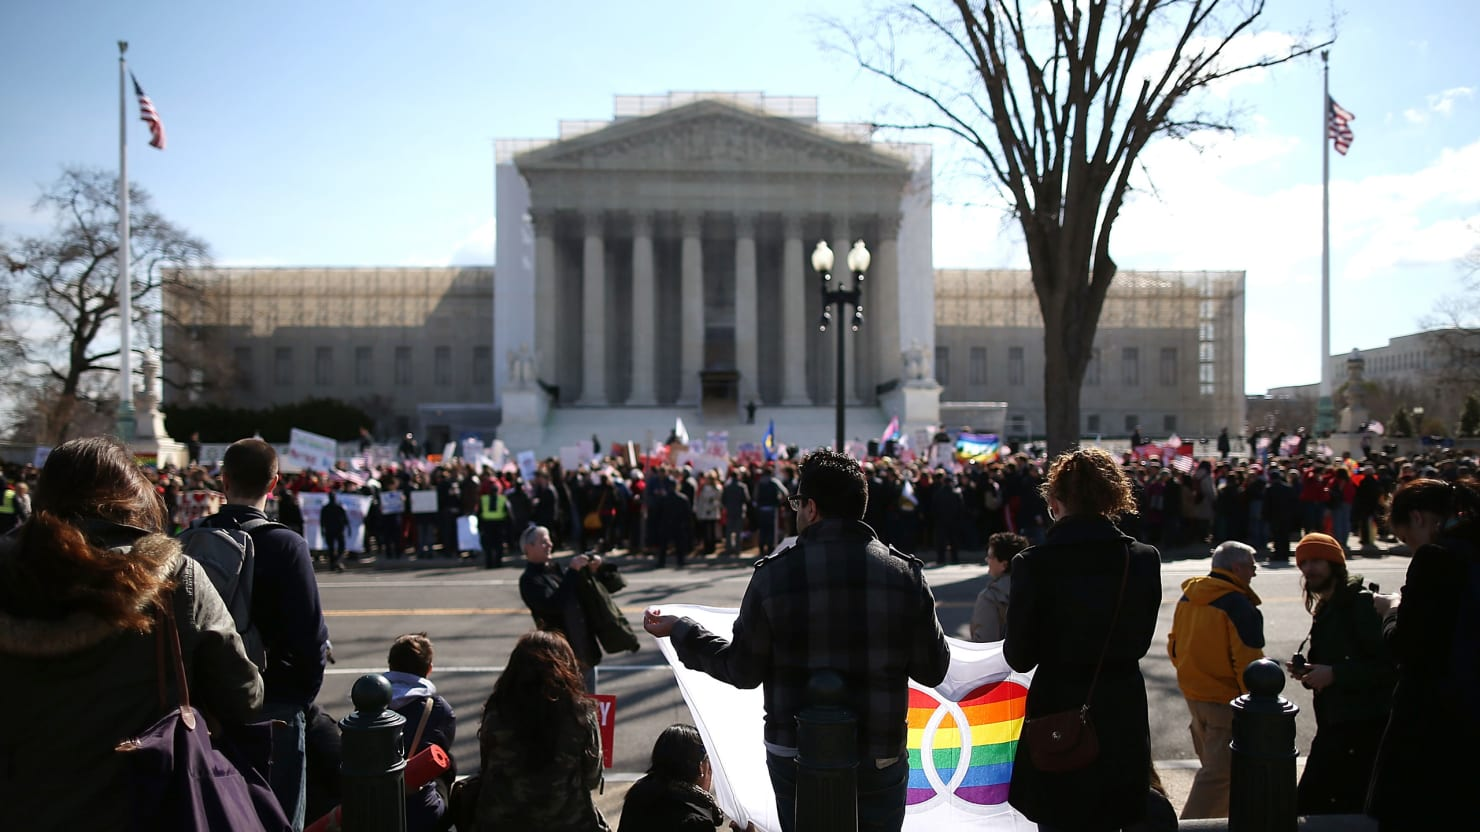 Justices Dance Around Procedure, But DOMA Is Still About Discrimination